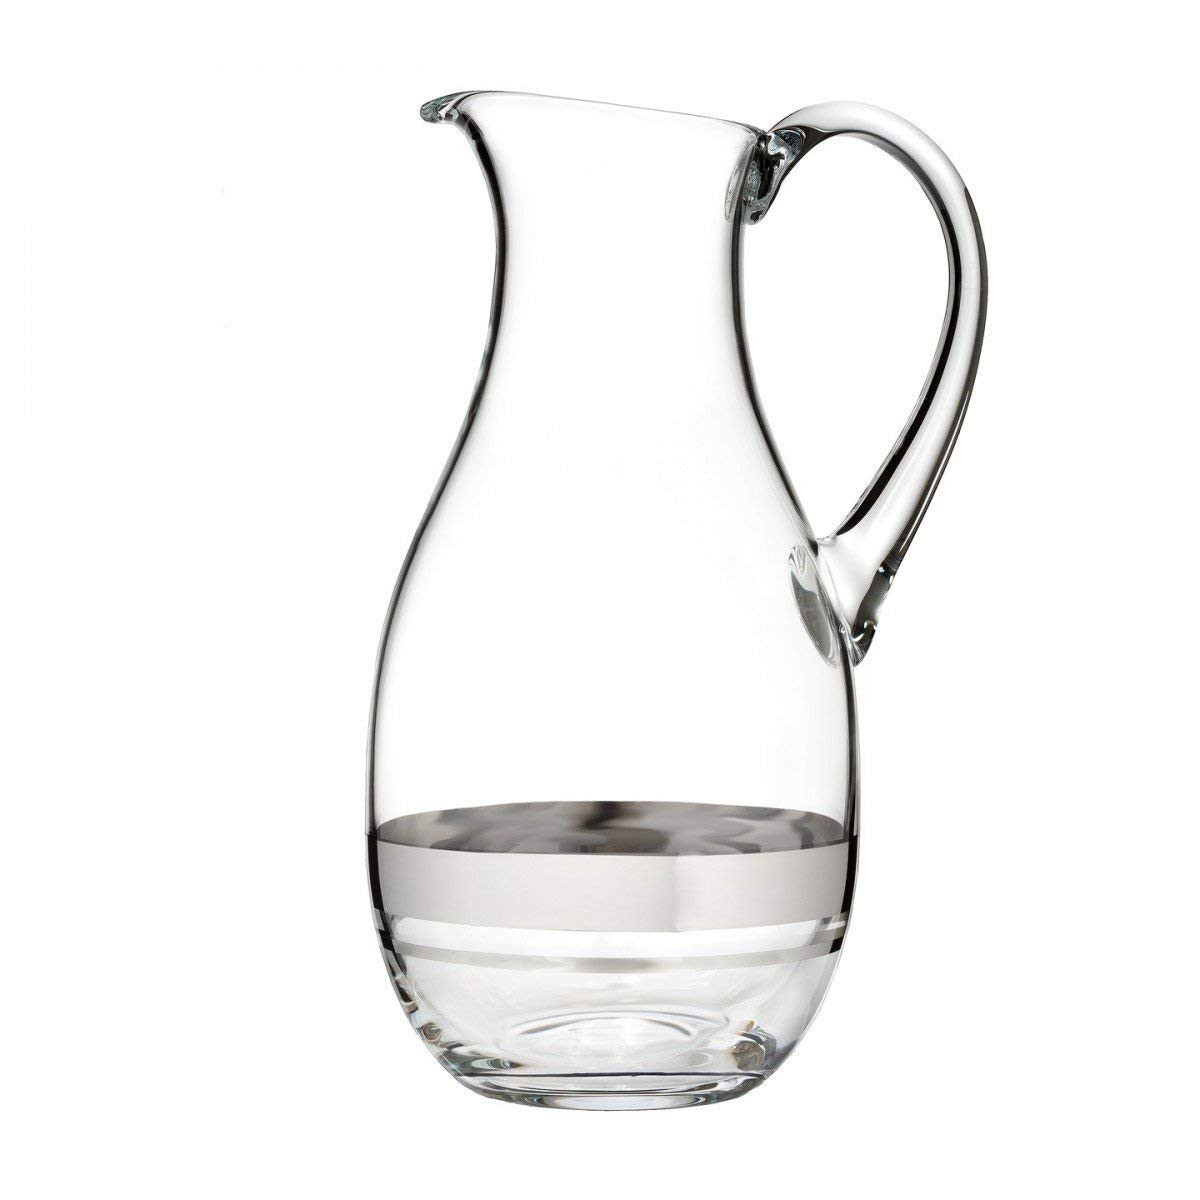 Old Waterford Crystal Vase Of Amazon Com Elegance Pitcher Carafes Pitchers Throughout 614s1vvffpl Sl1200